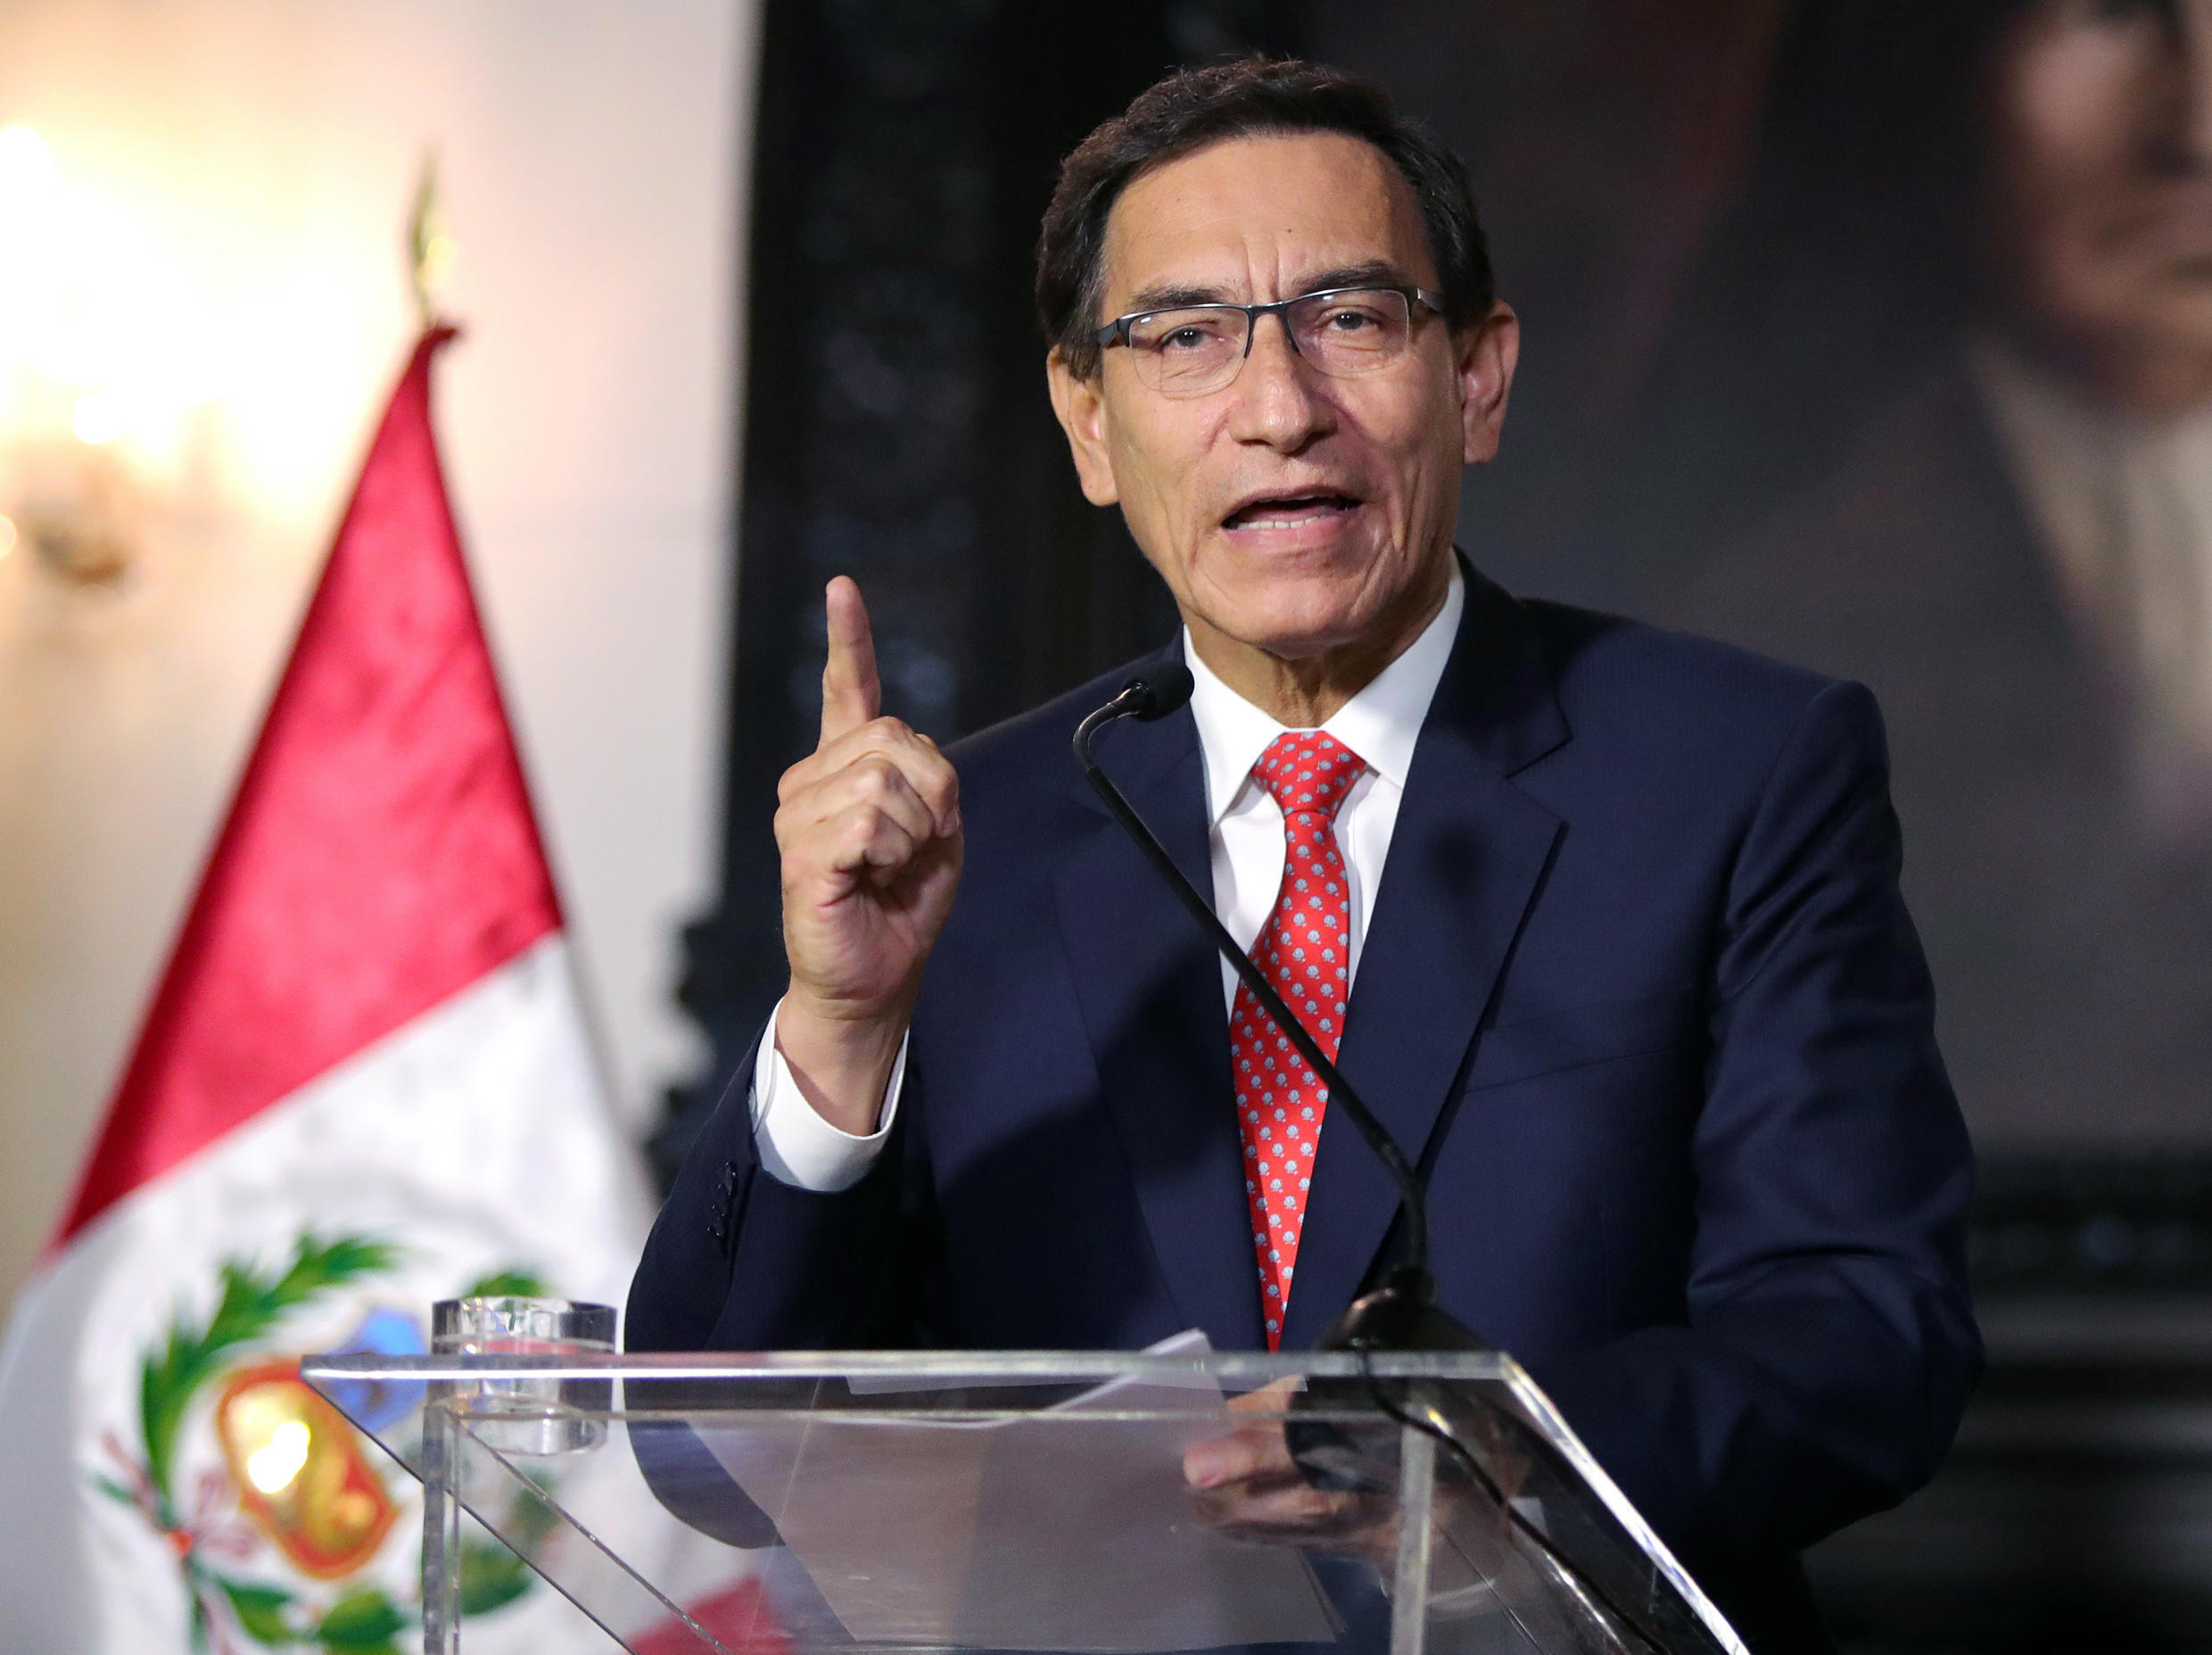 President Martin Vizcarra gives a televised message to the nation, in Lima, on September 10, 2020, amid a political crisis for allegadly trying to obstruct a graft probe involving government officials.